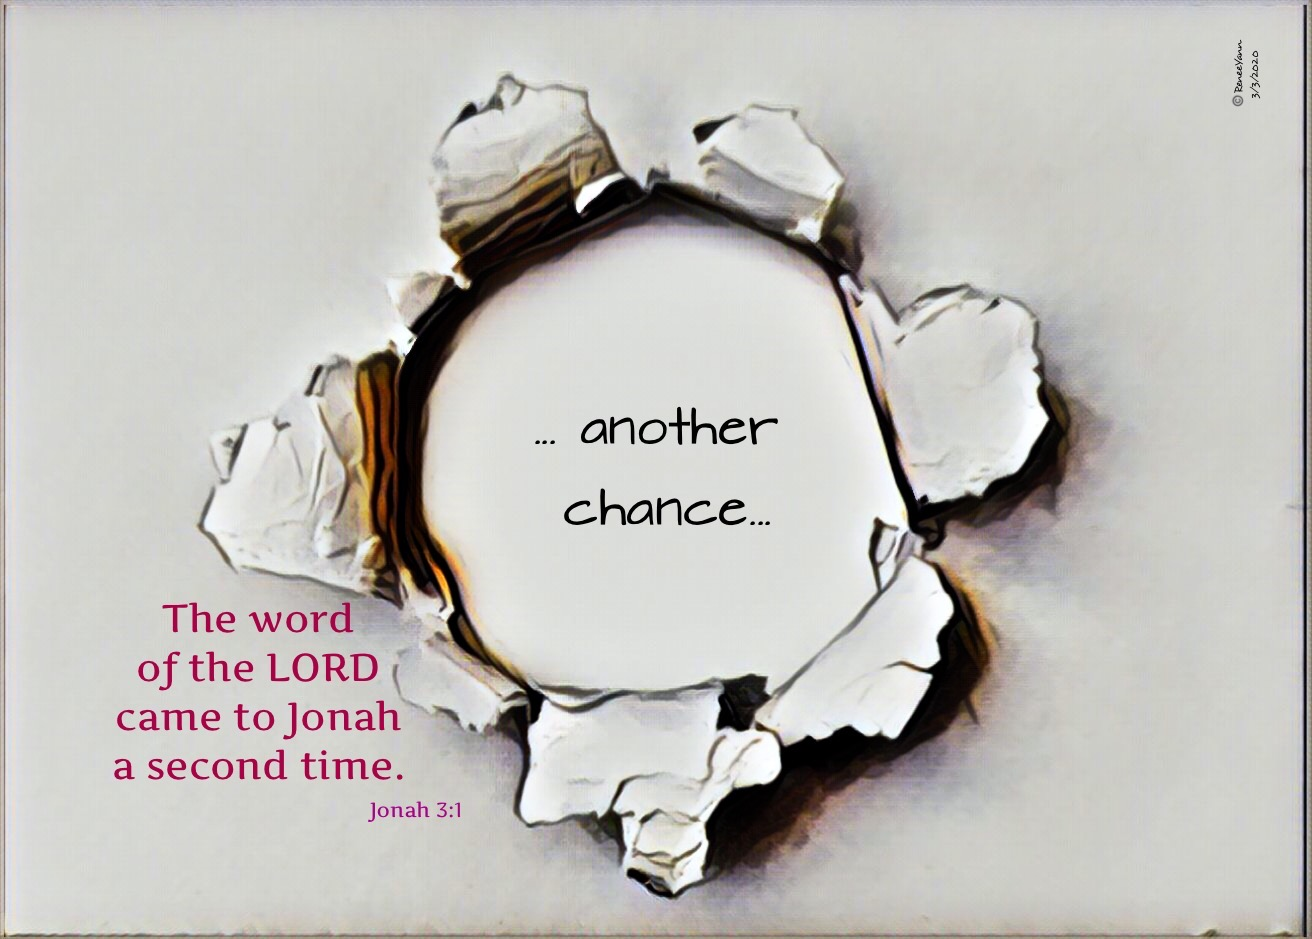 Jonah3_1another chance